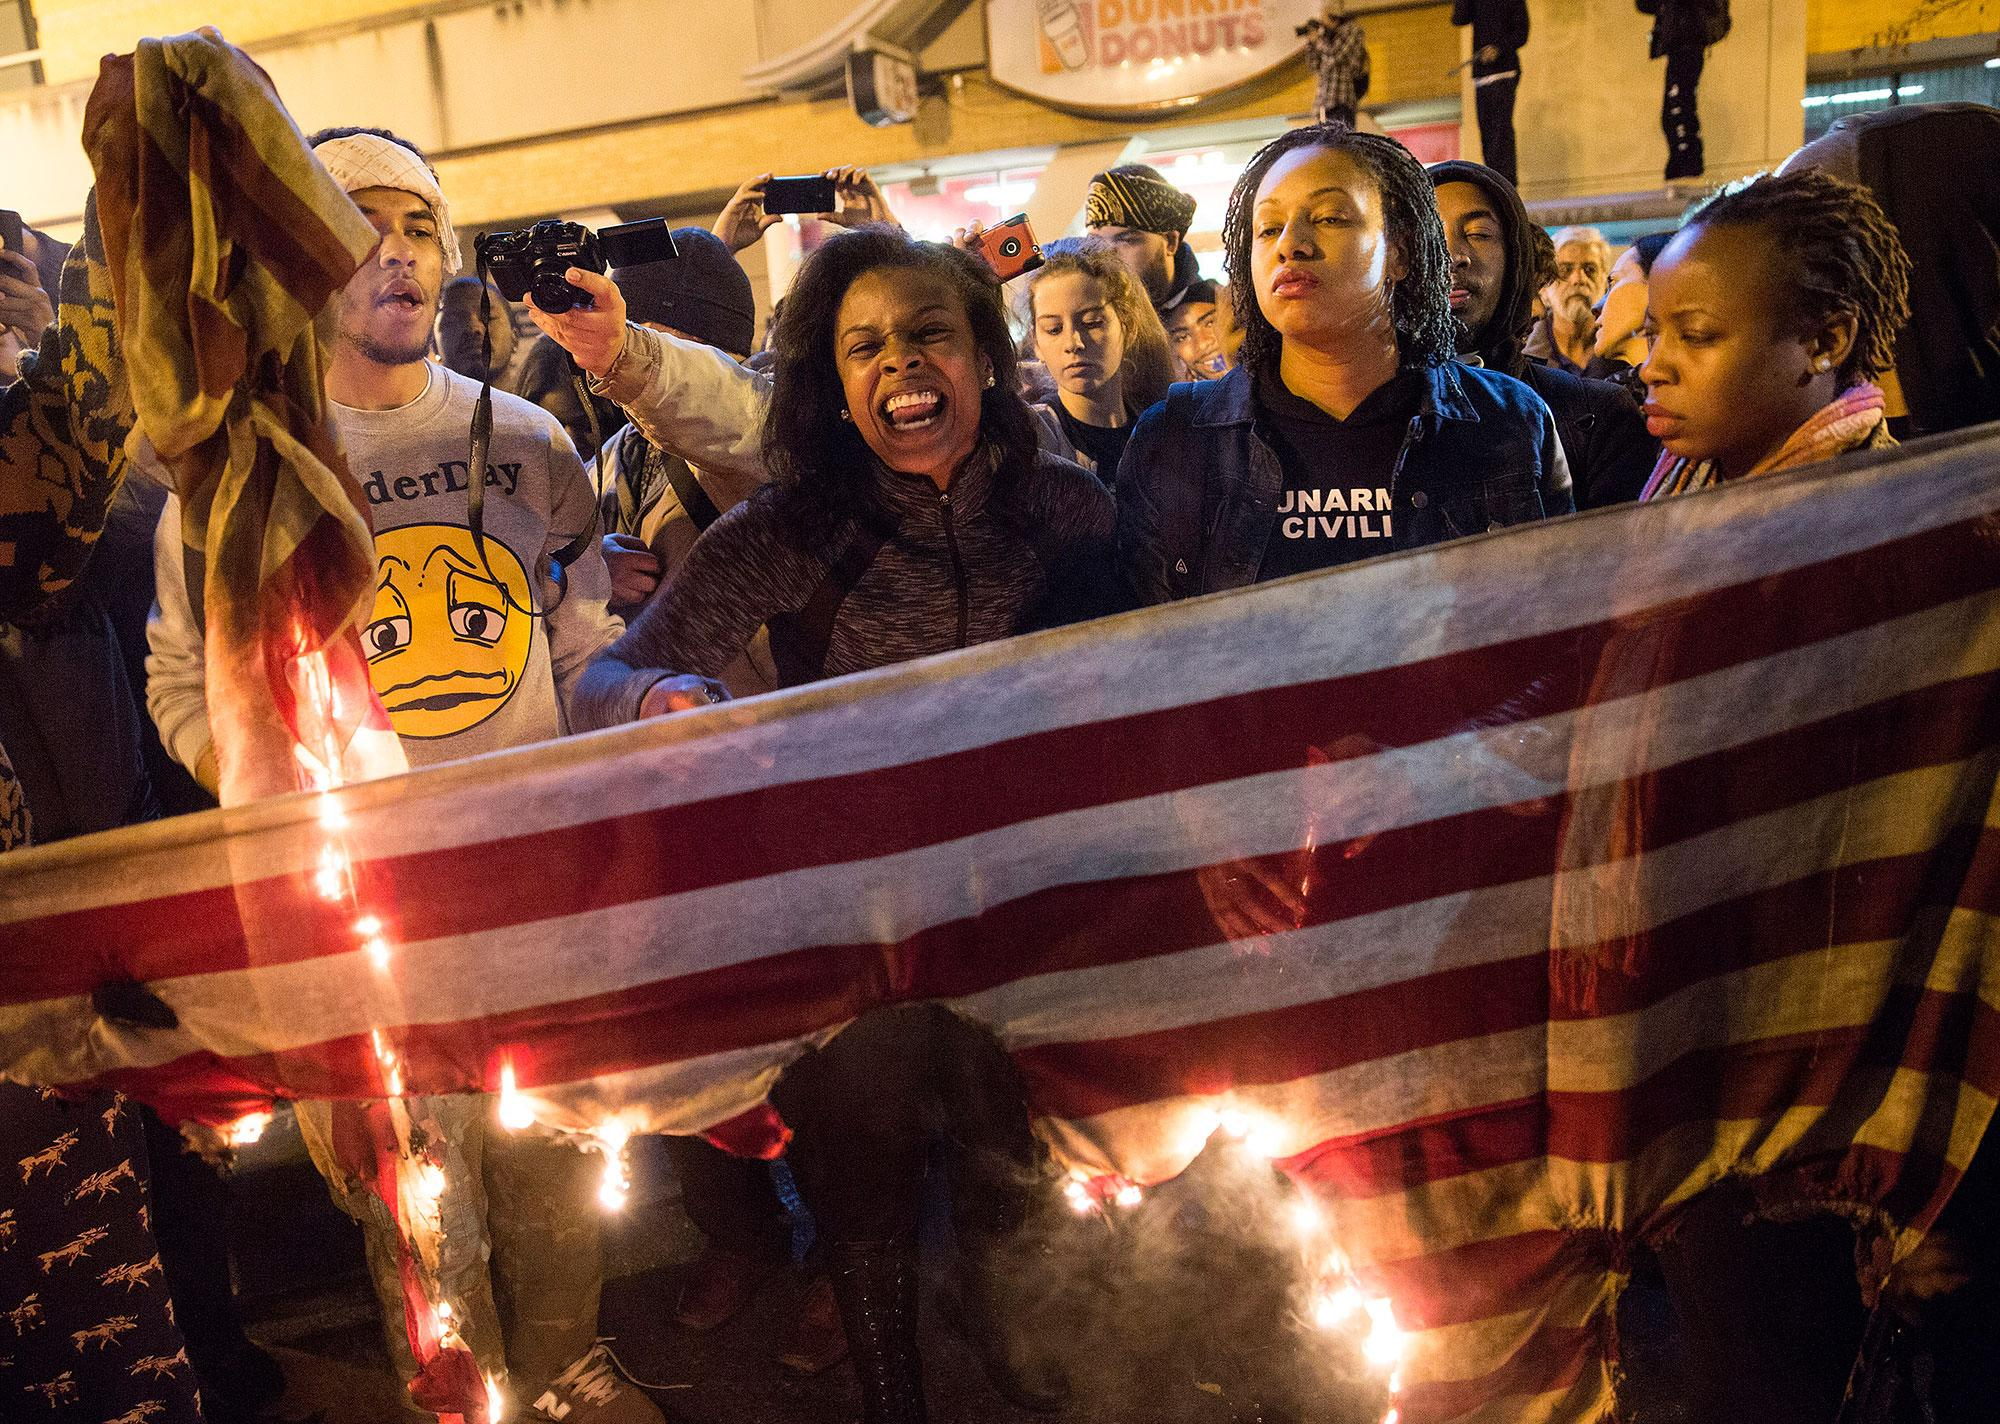 "<p>Demonstrators burn an American flag during a ""Justice for Mike Brown"" march and rally after a grand jury failed to indict a white police officer in the shooting death of African-American teenager Michael Brown, in Washington on Nov.25, 2014. (Joshua Roberts/Reuters) </p>"